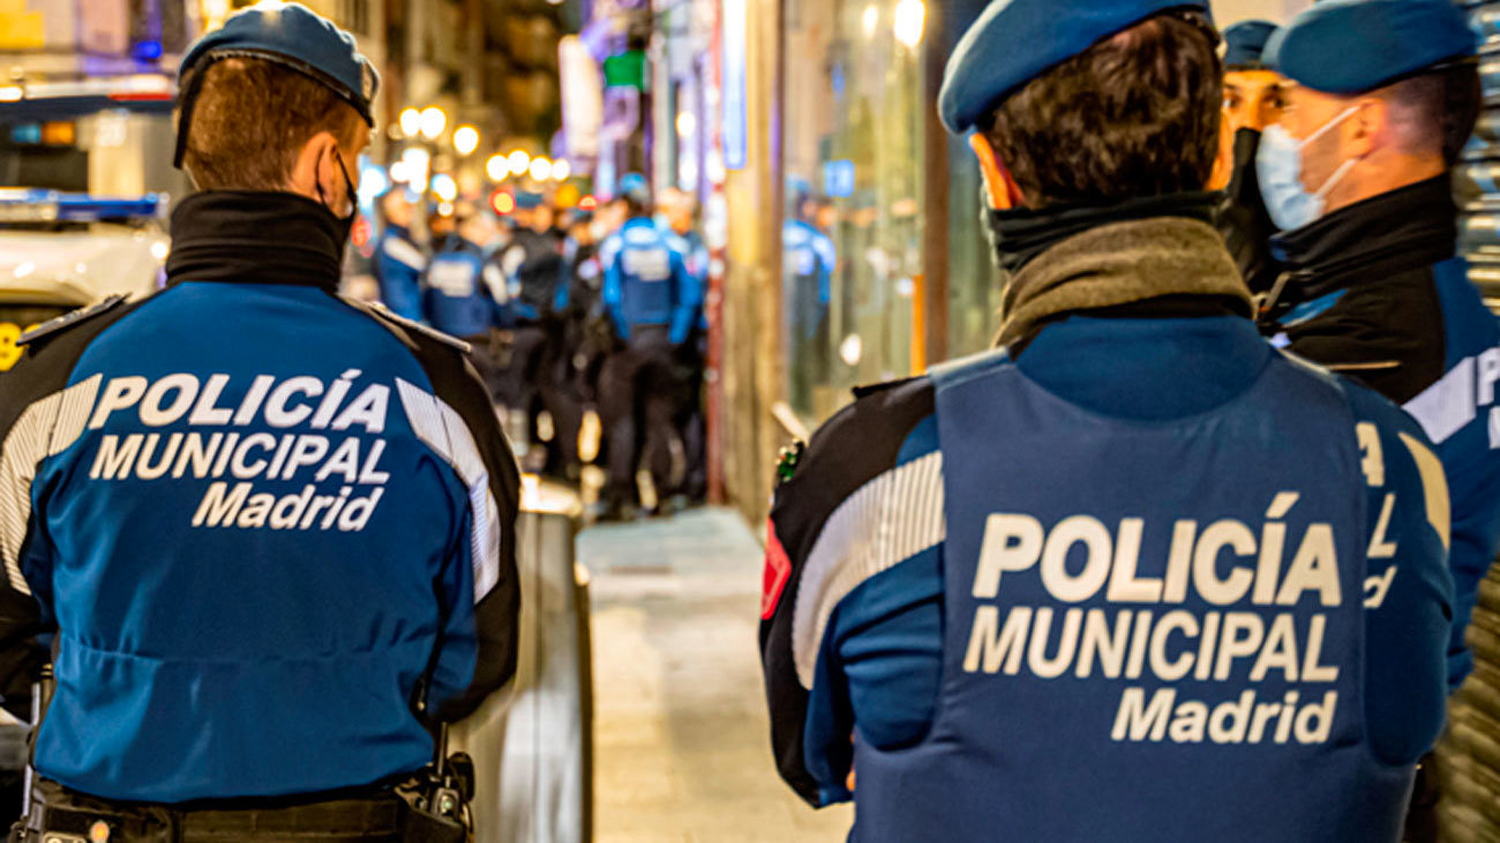 Three Spanish police officers have their backs to the camera. They are standing on a busy street at night time.